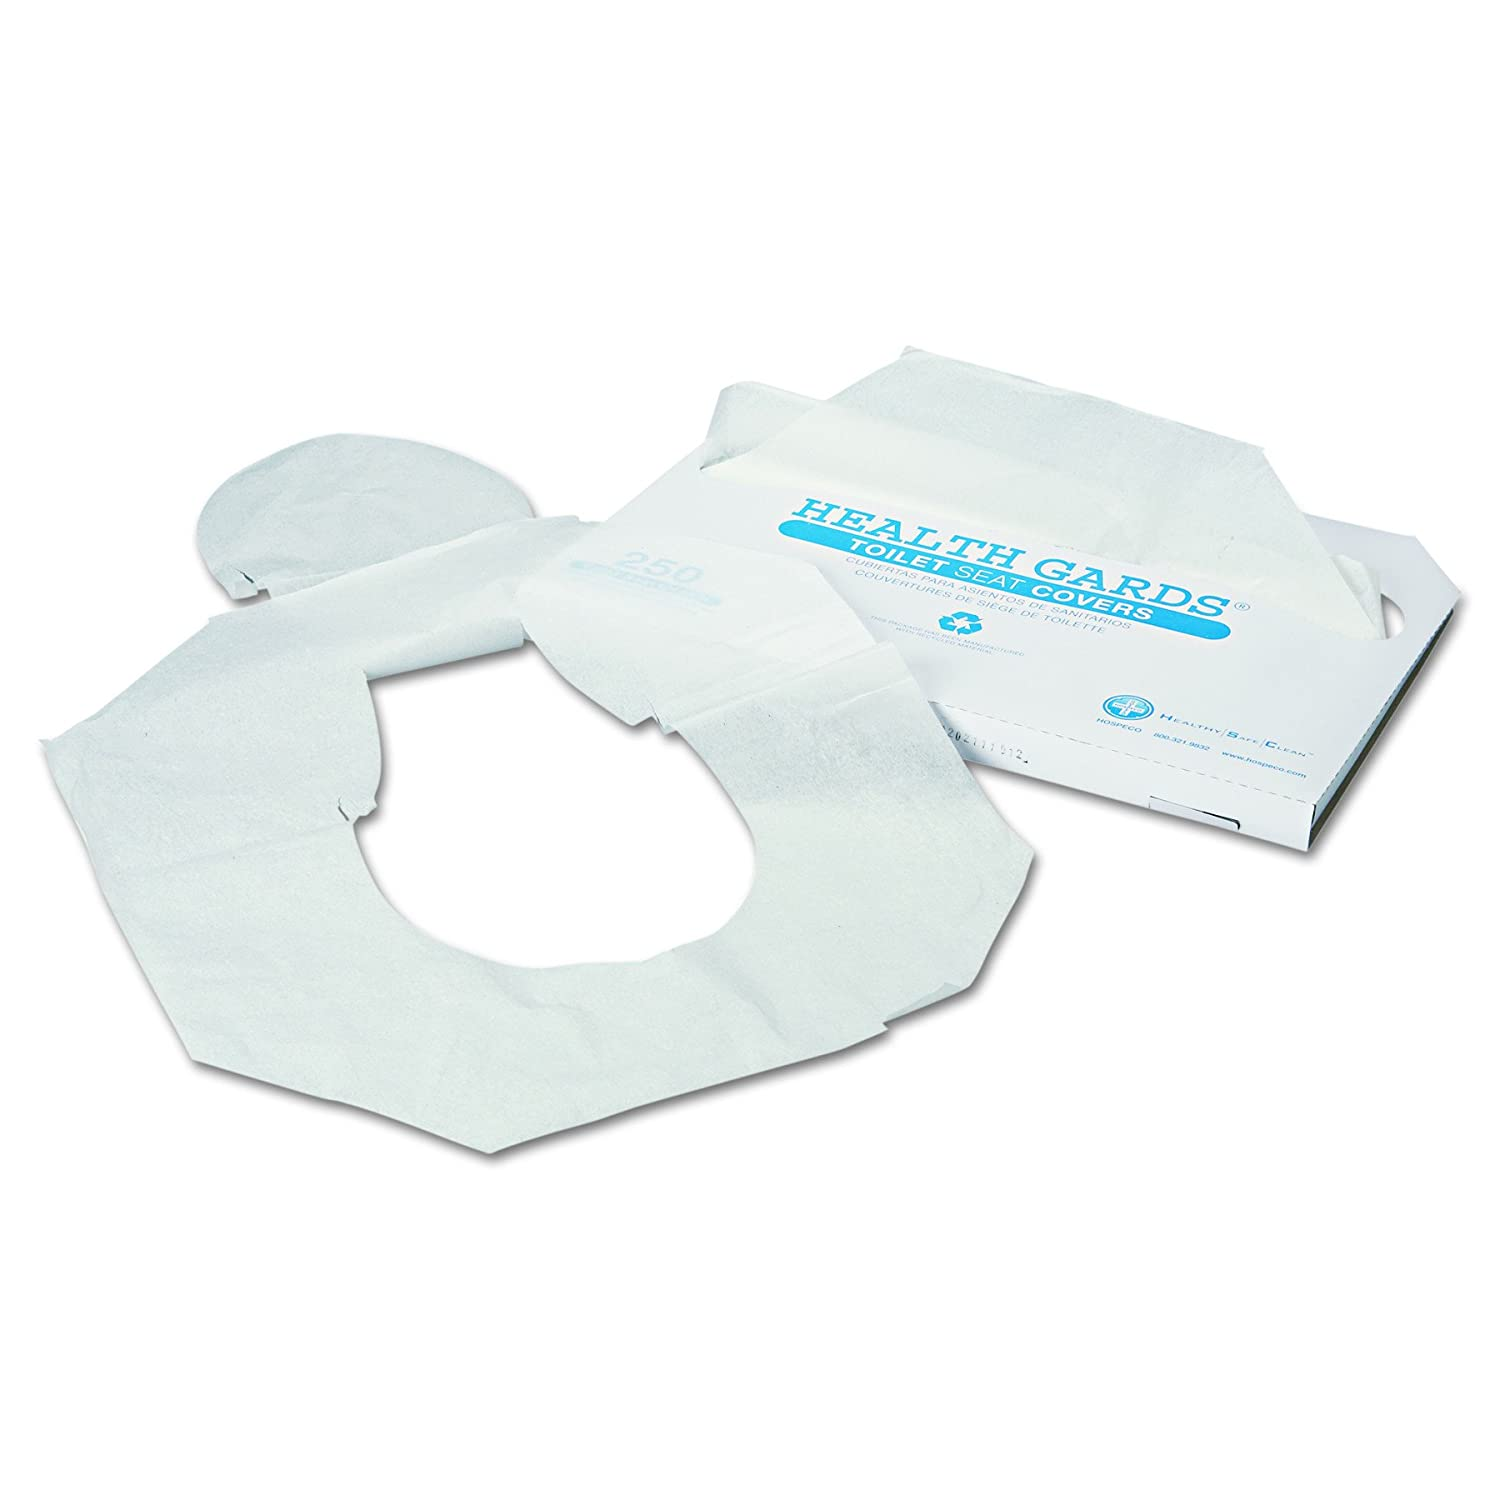 HOSPECO HG1000 Health Gards Toilet Seat Covers, Half-Fold, White, Pack of 250 (Case of 4)